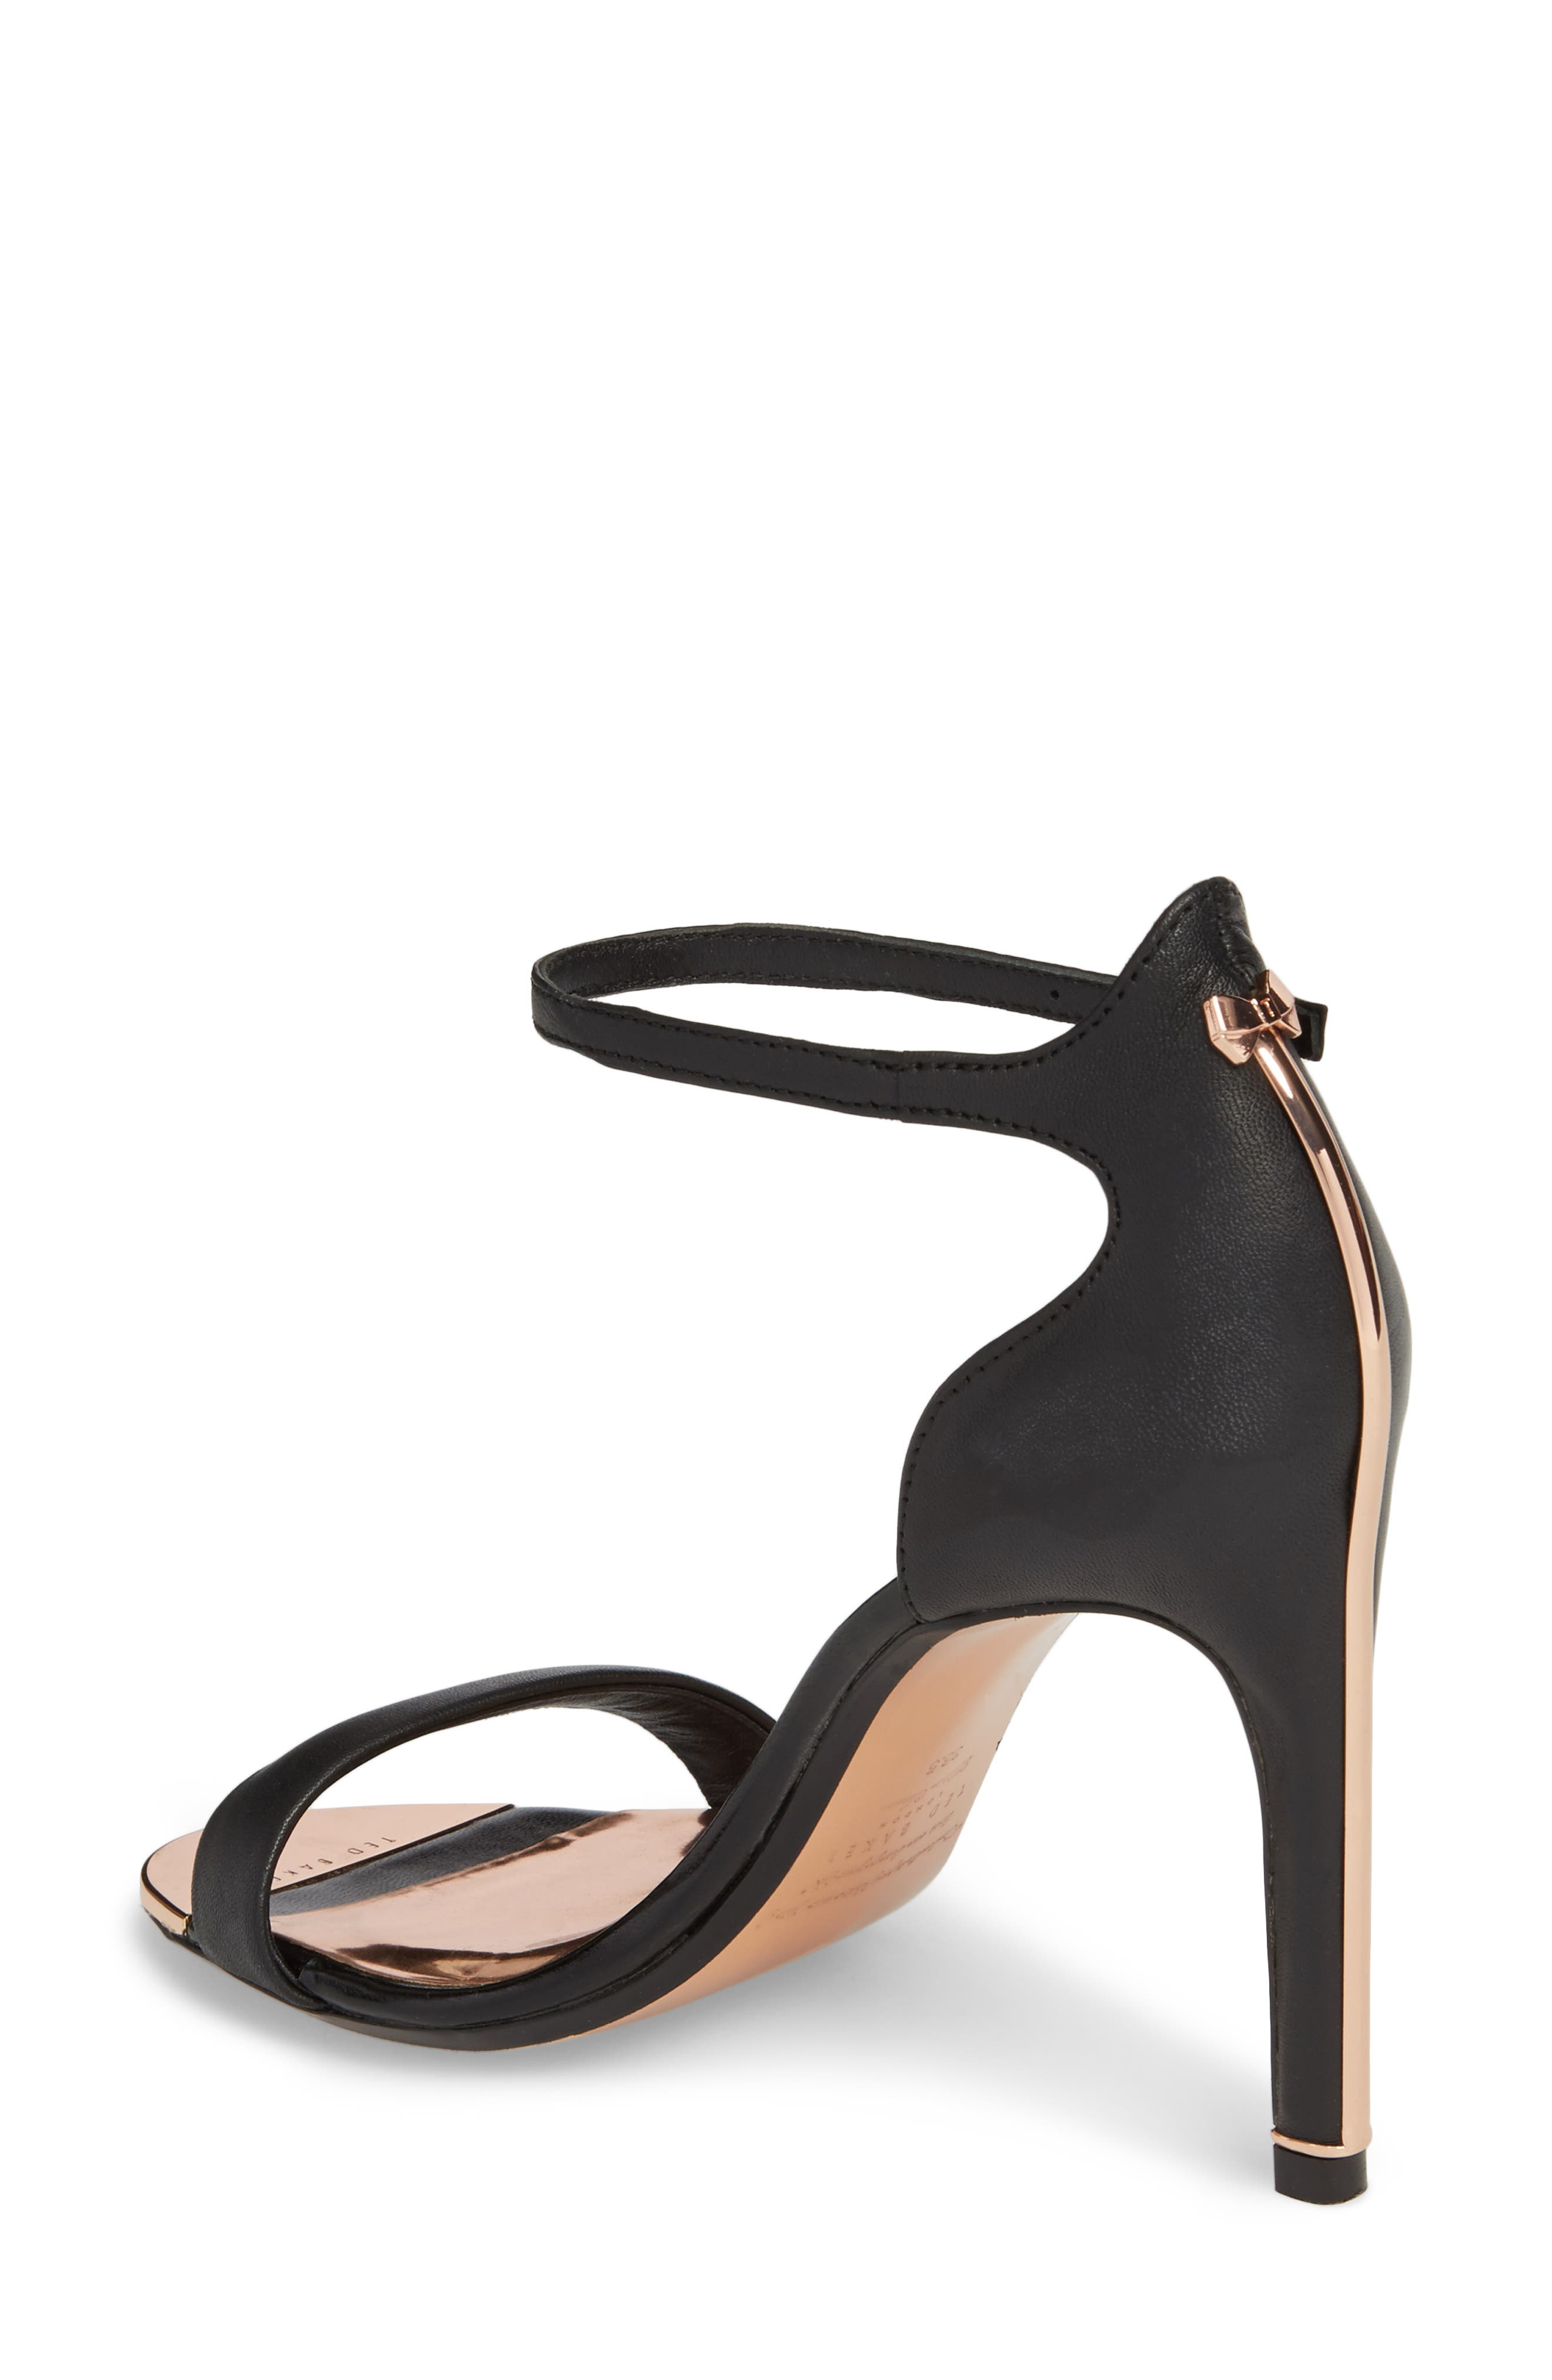 Sharlot Ankle Strap Sandal,                             Alternate thumbnail 2, color,                             Black Leather